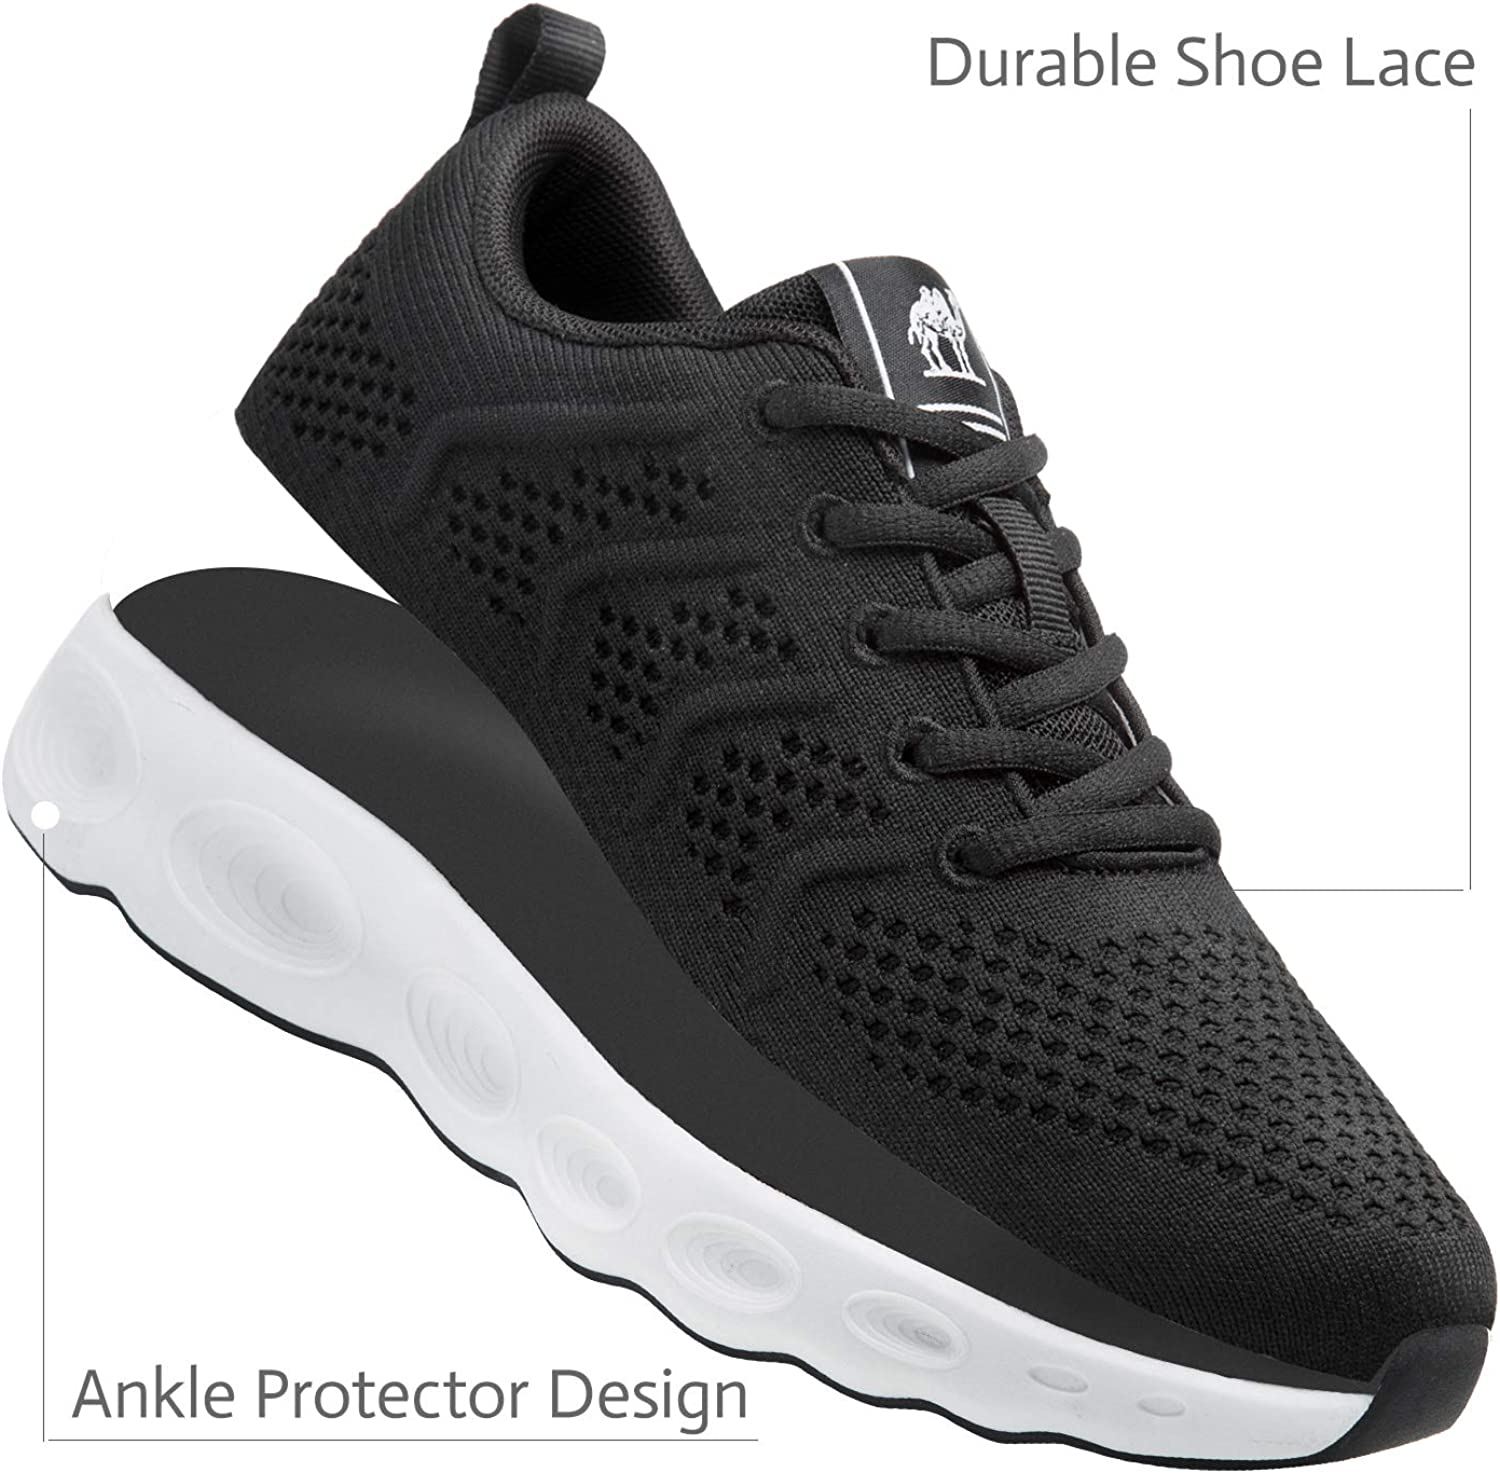 CAMEL CROWN Trail Running Shoes Men Super Lightweight Comfortable Tennis Shoes Fashion Mesh Breathable Casual Road Running